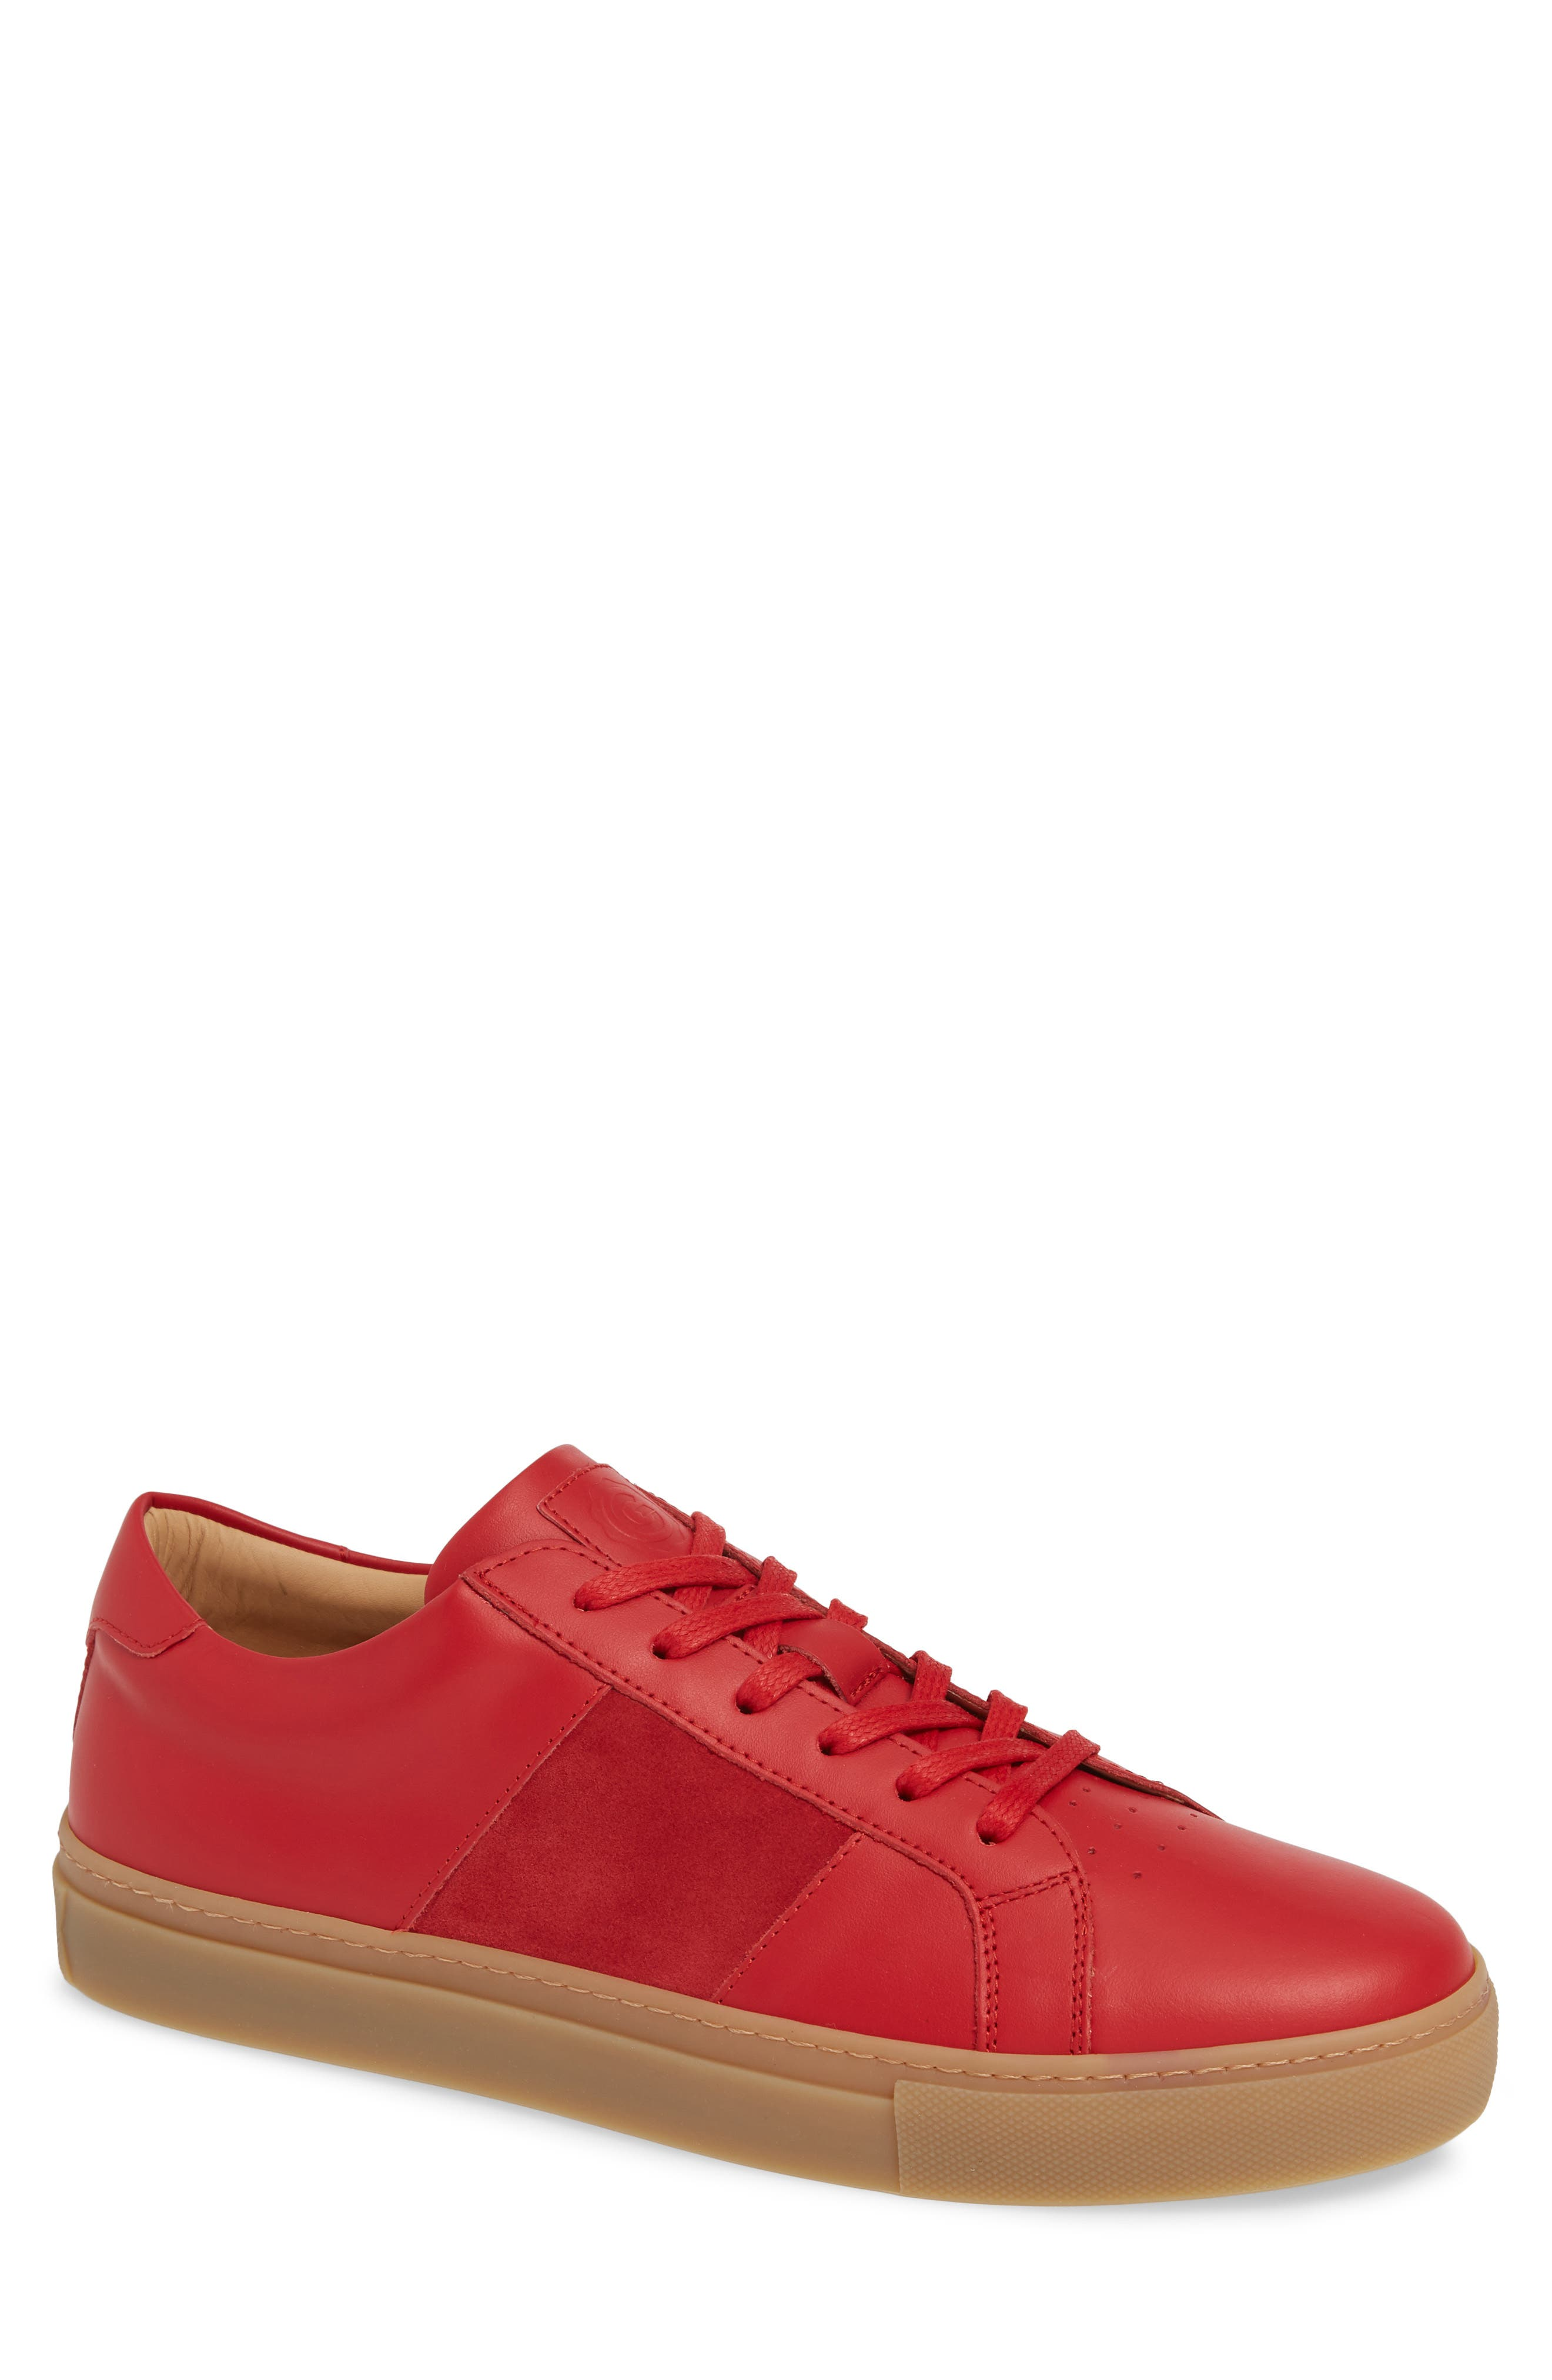 GREATS Royale Sneaker in Red/ Gum Leather